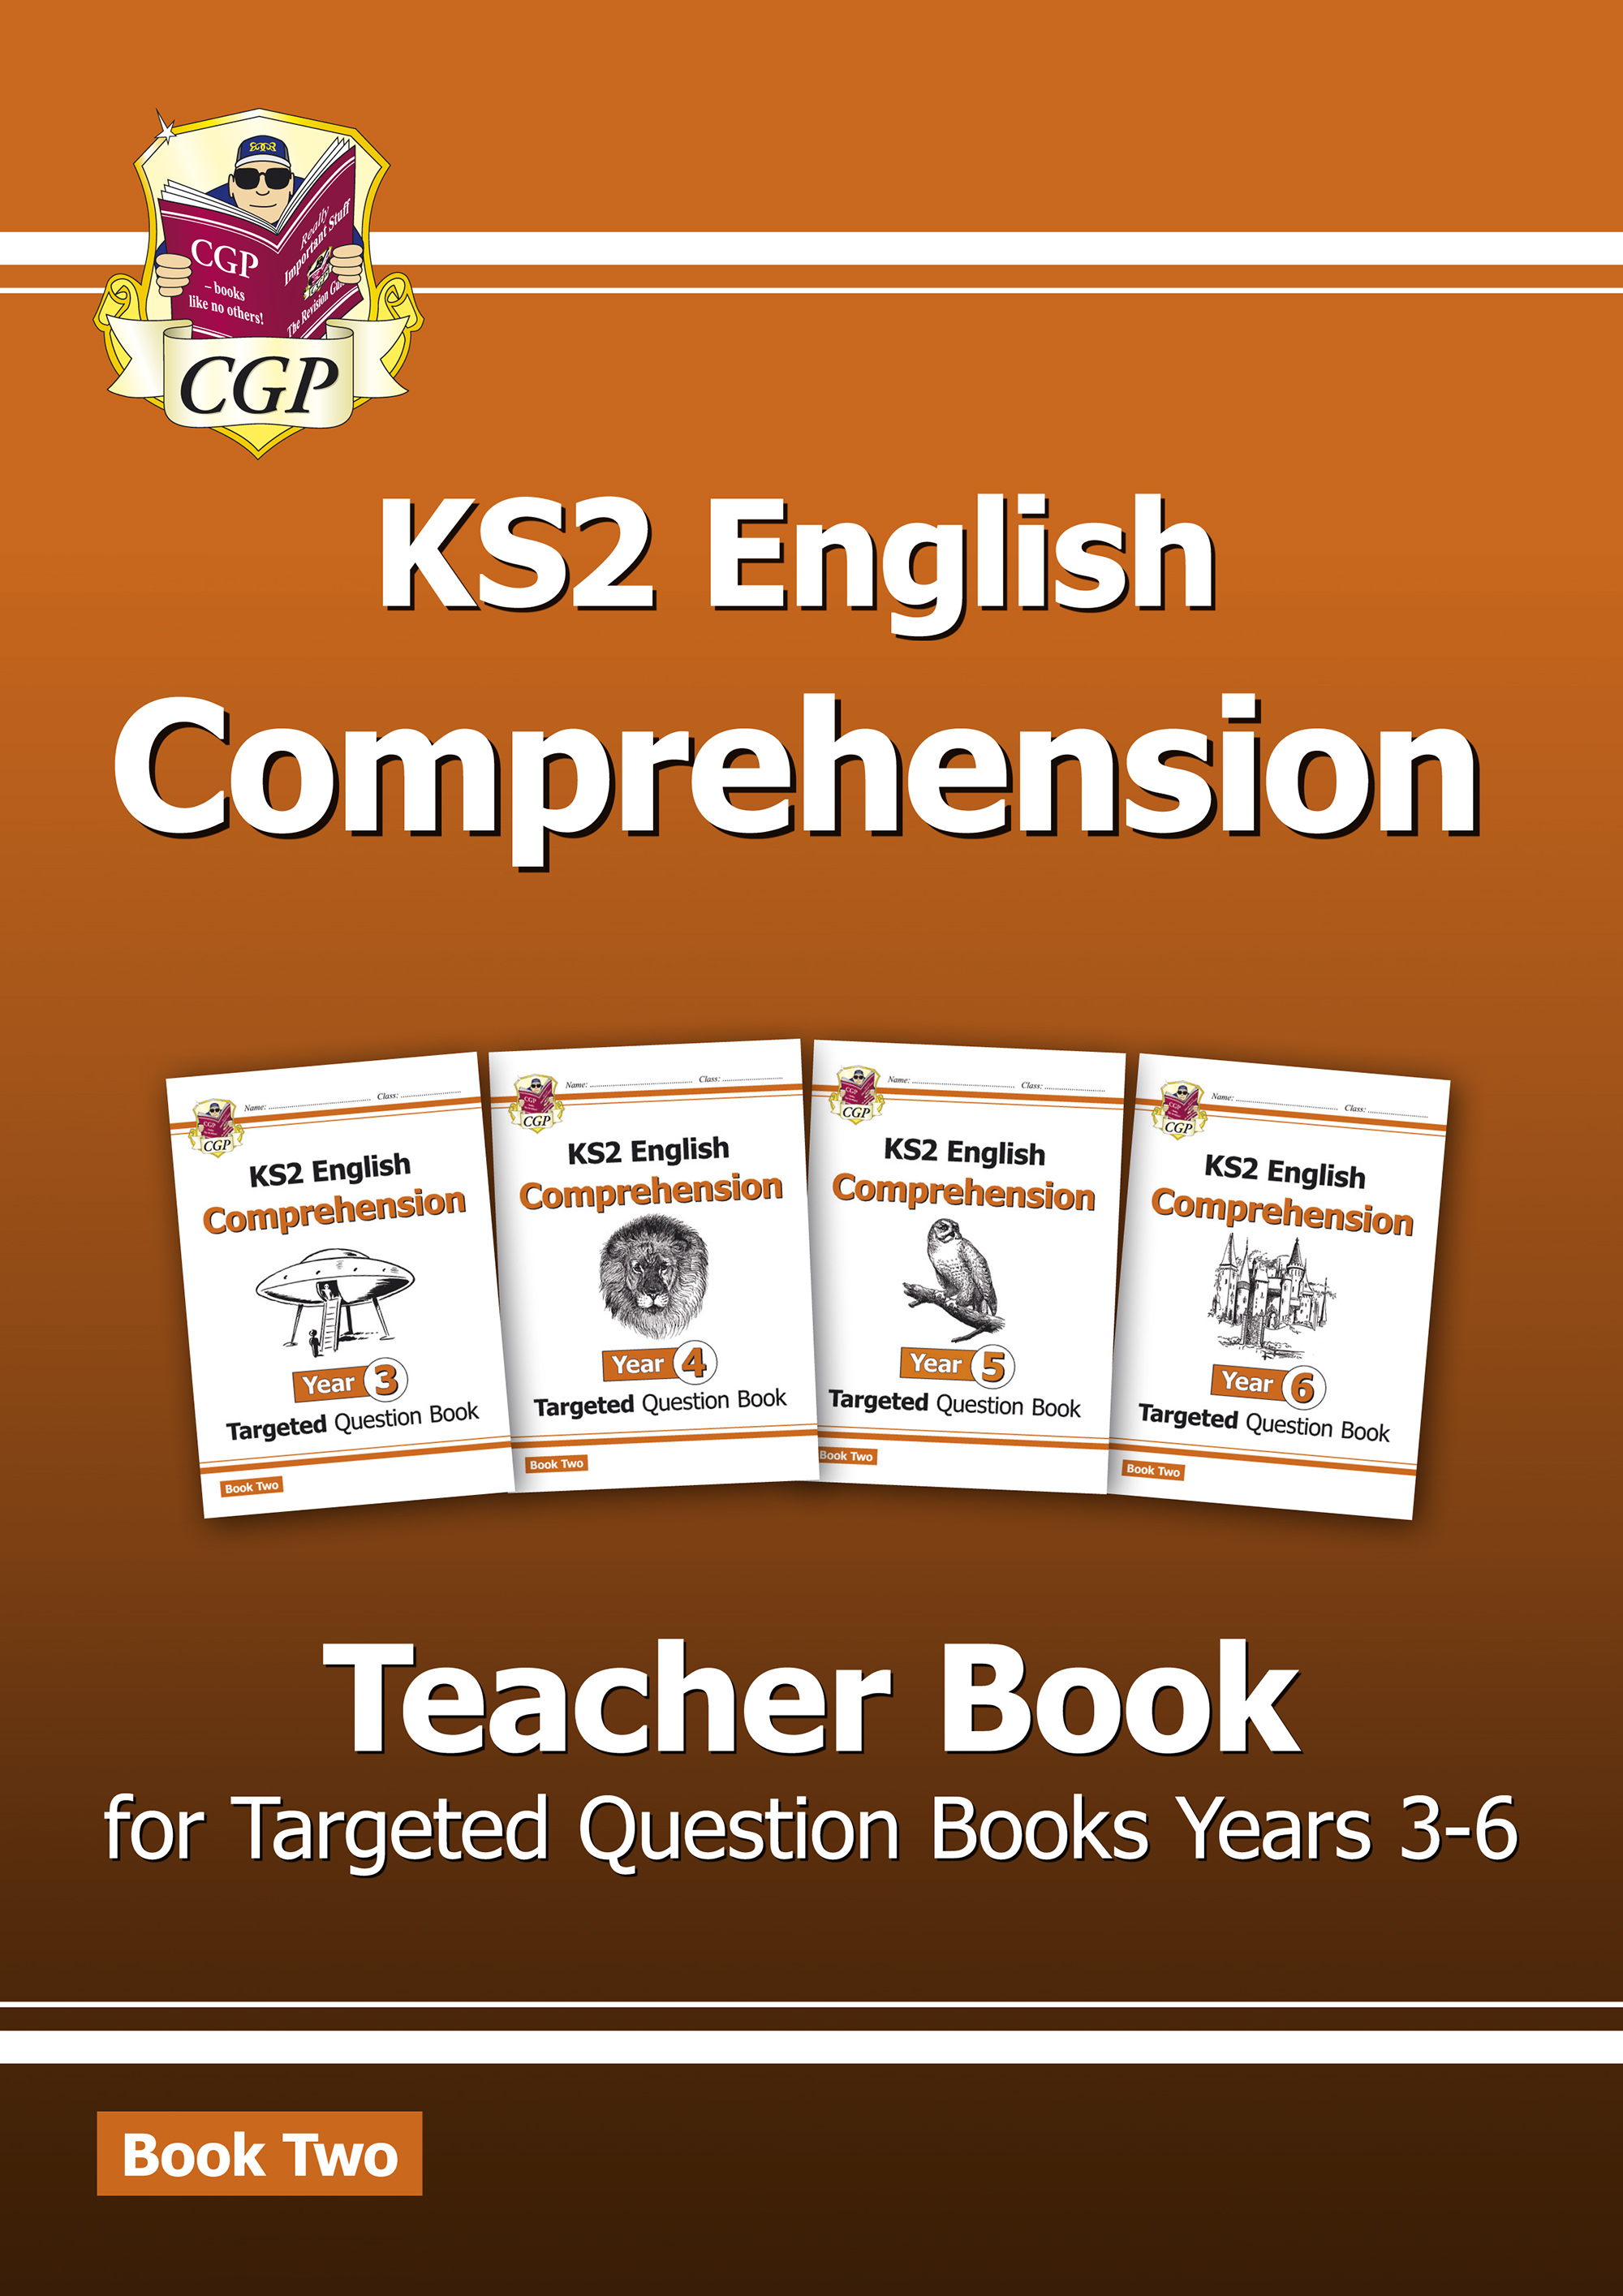 ECT221 - KS2 English Targeted Comprehension: Teacher Book 2, Years 3-6